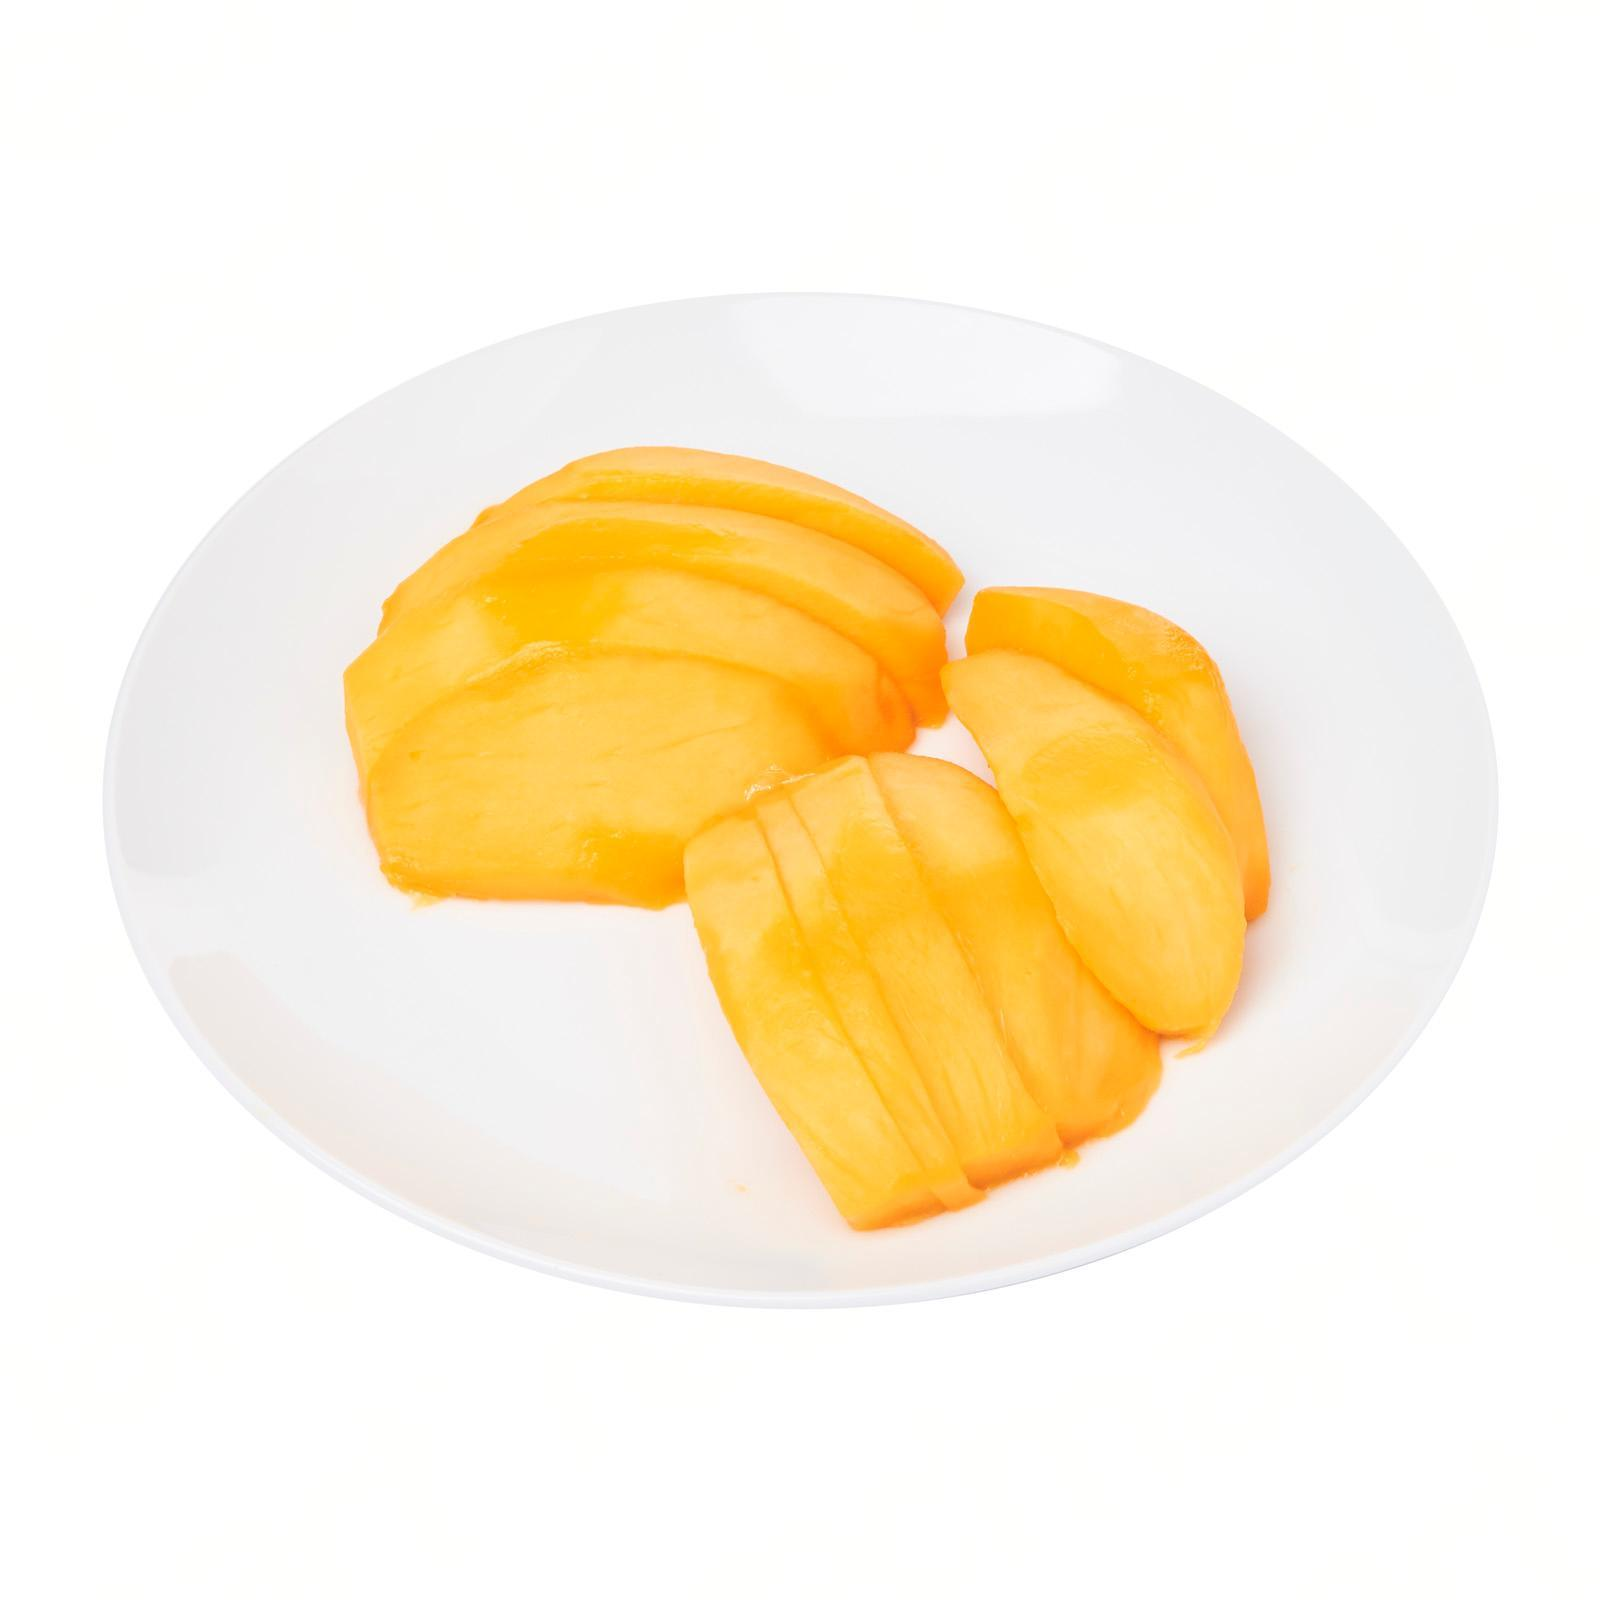 Sunny Fruit Fresh Mangoes Sliced